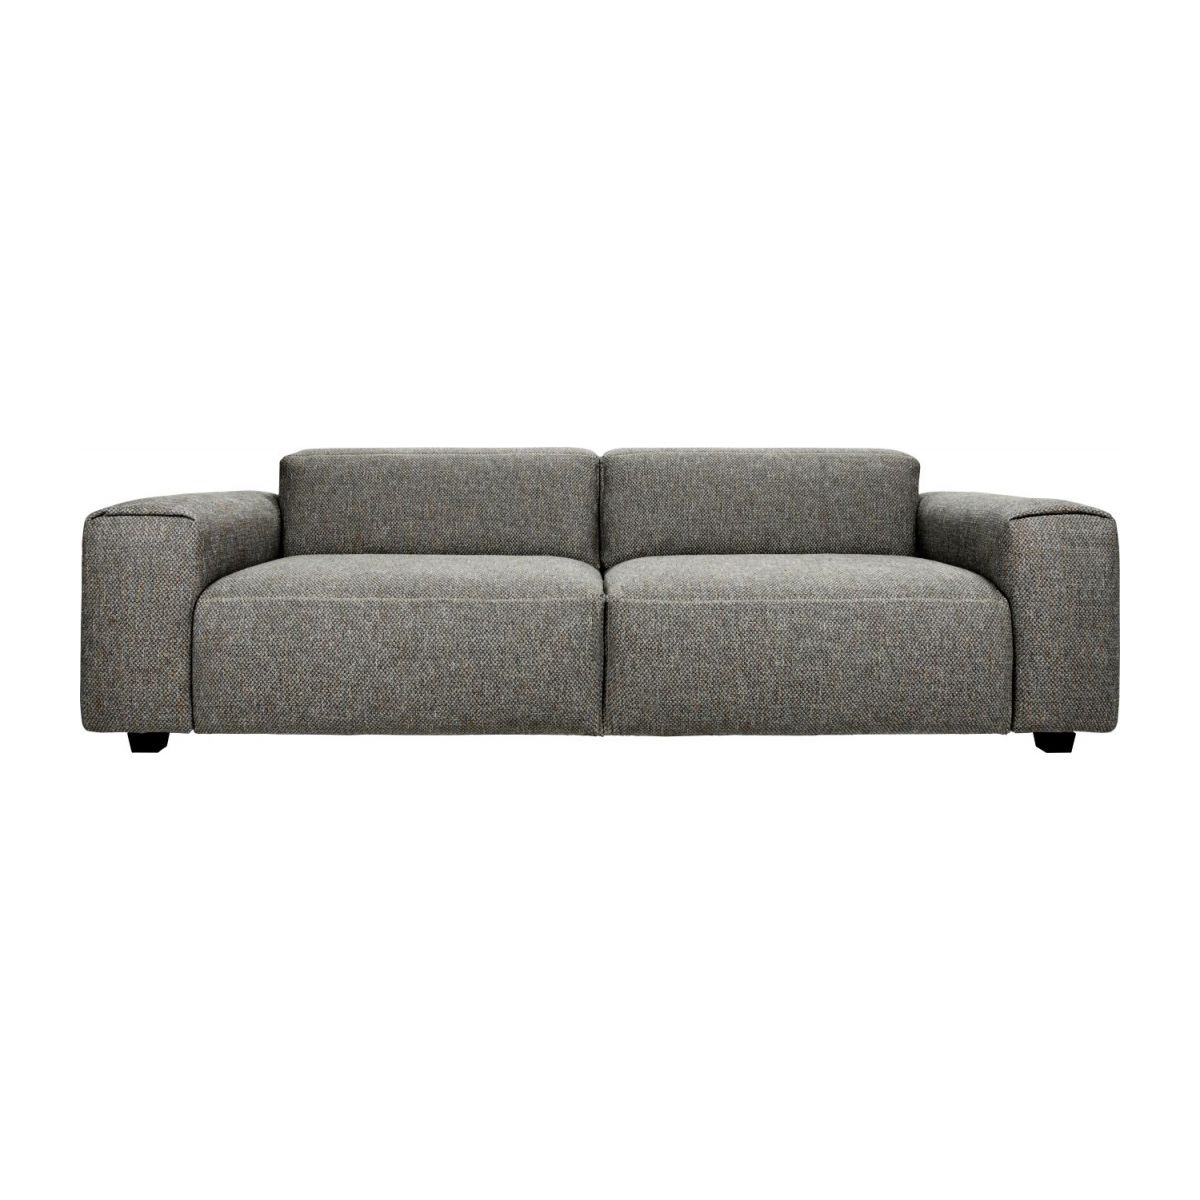 4-Sitzer Sofa aus Stoff Bellagio night black n°4